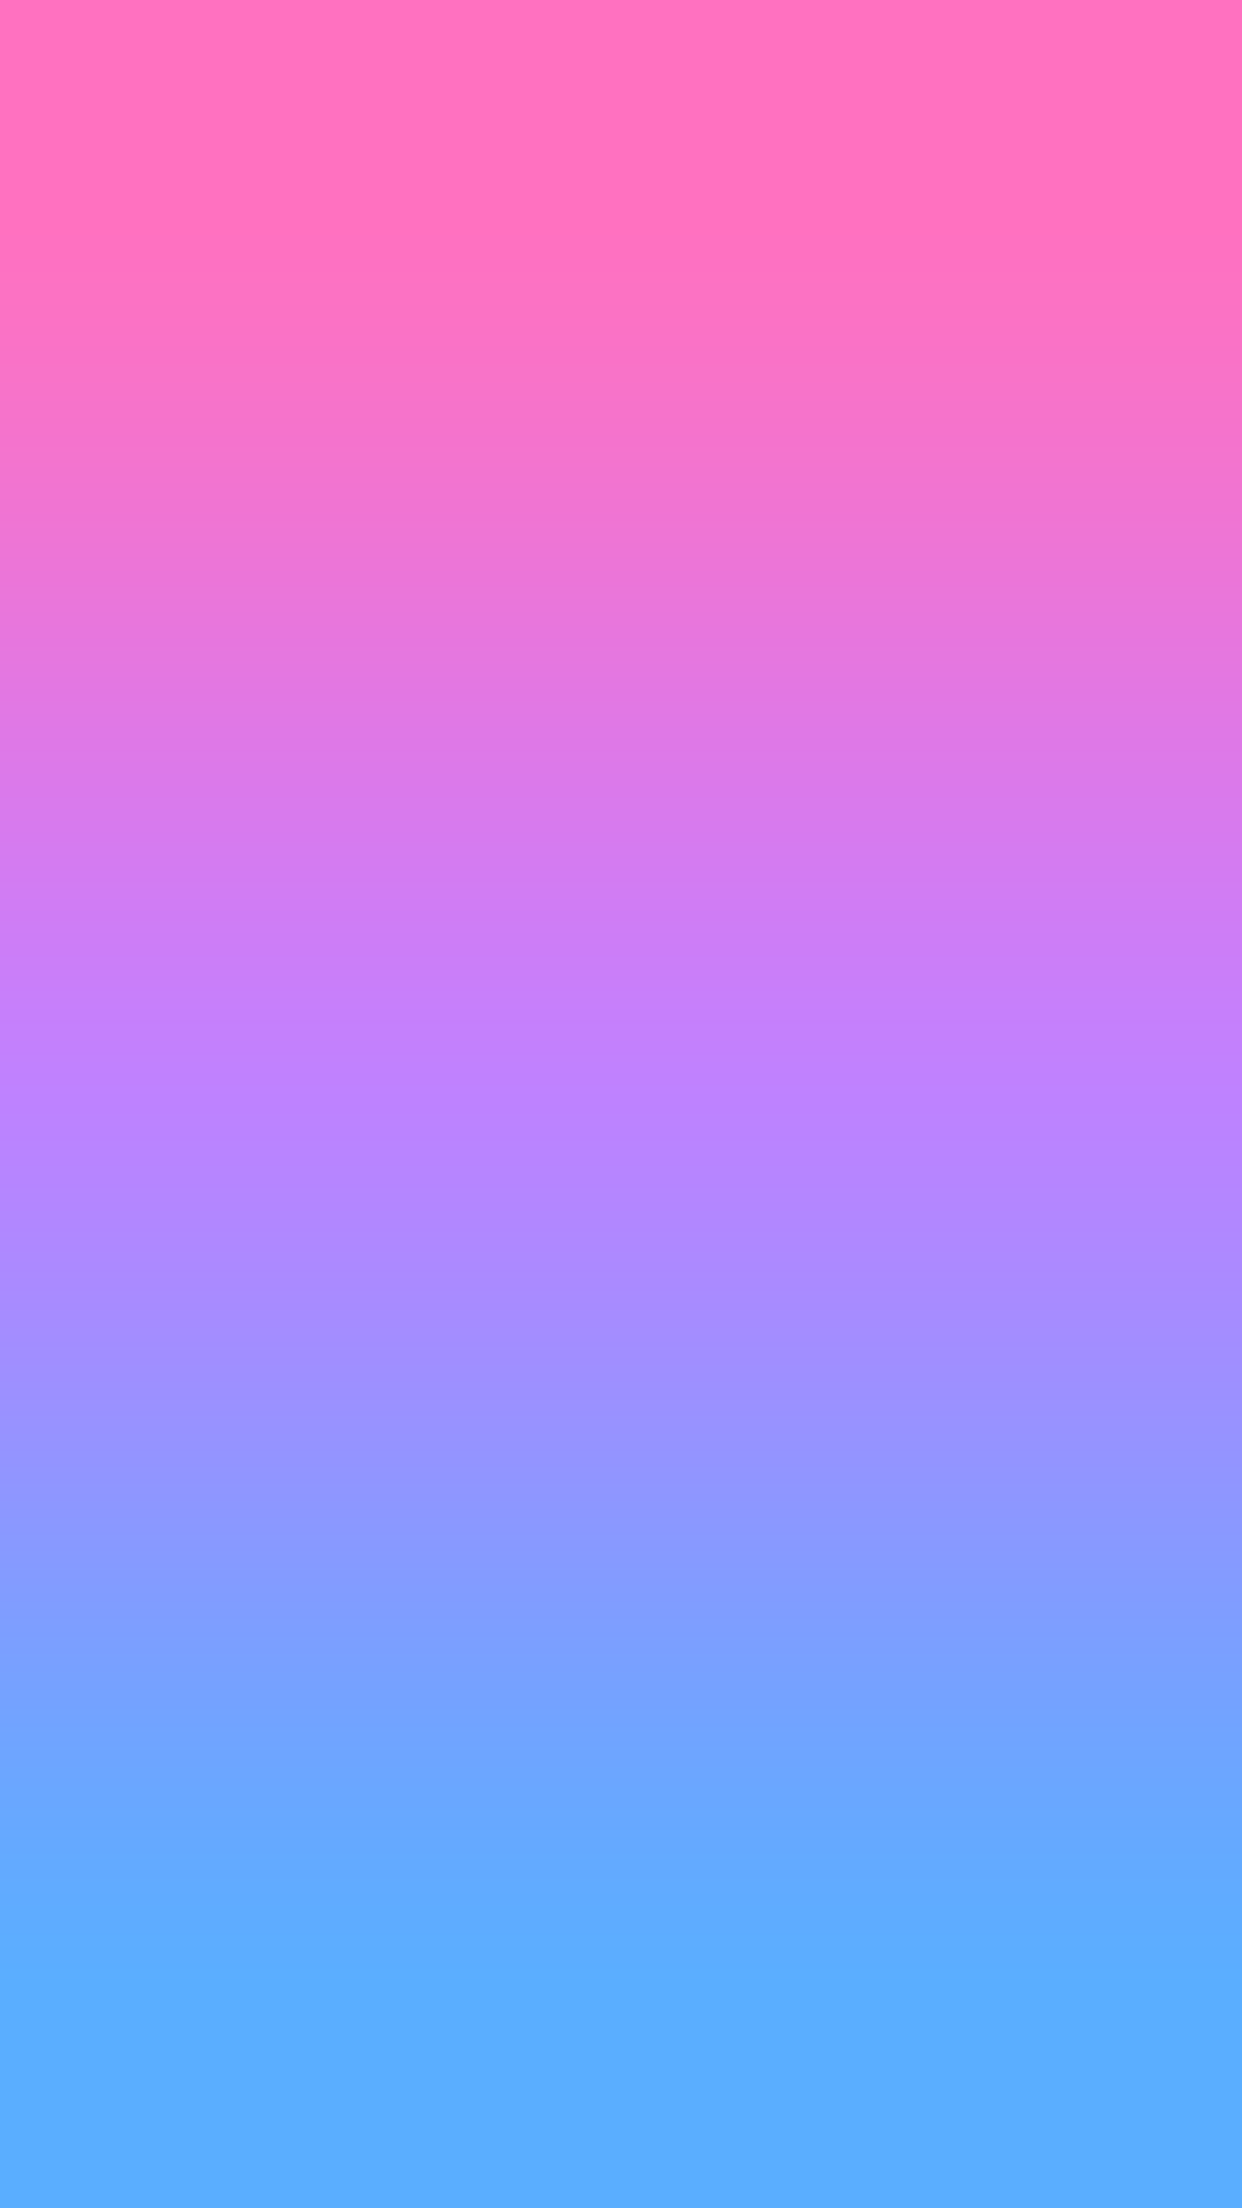 pink and purple ombre background wwwpixsharkcom